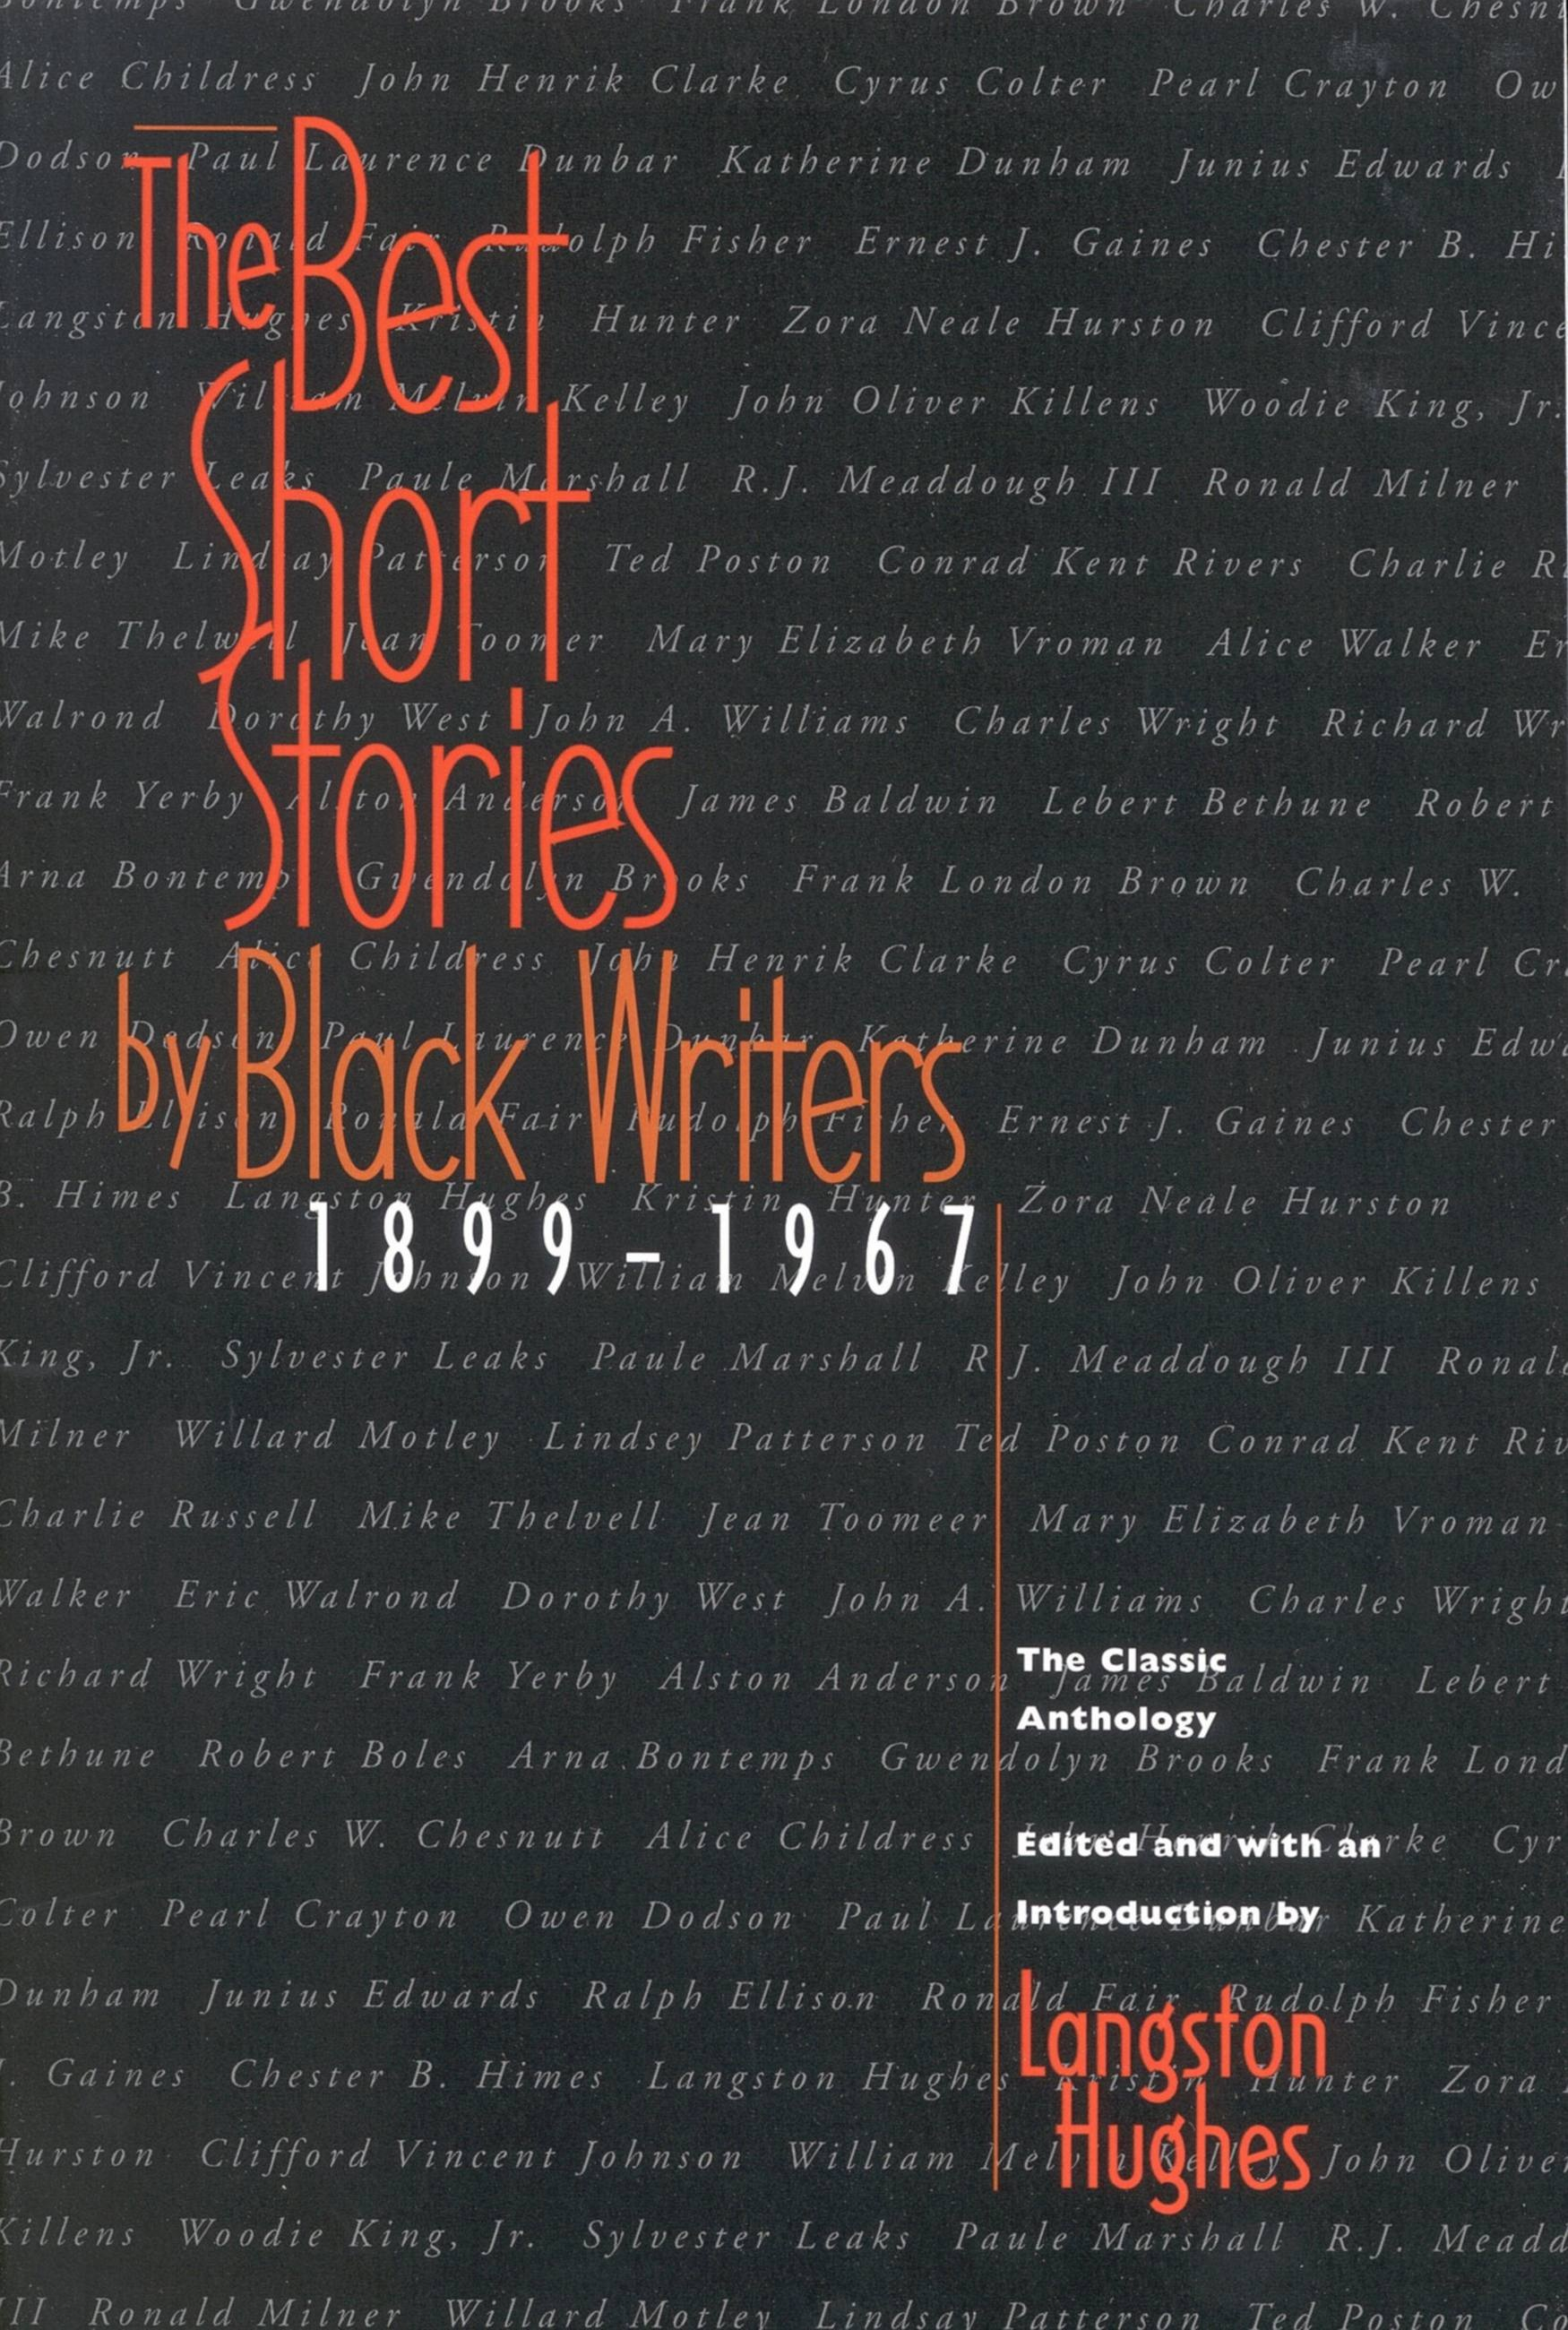 Best Short Stories by Black Writers, The